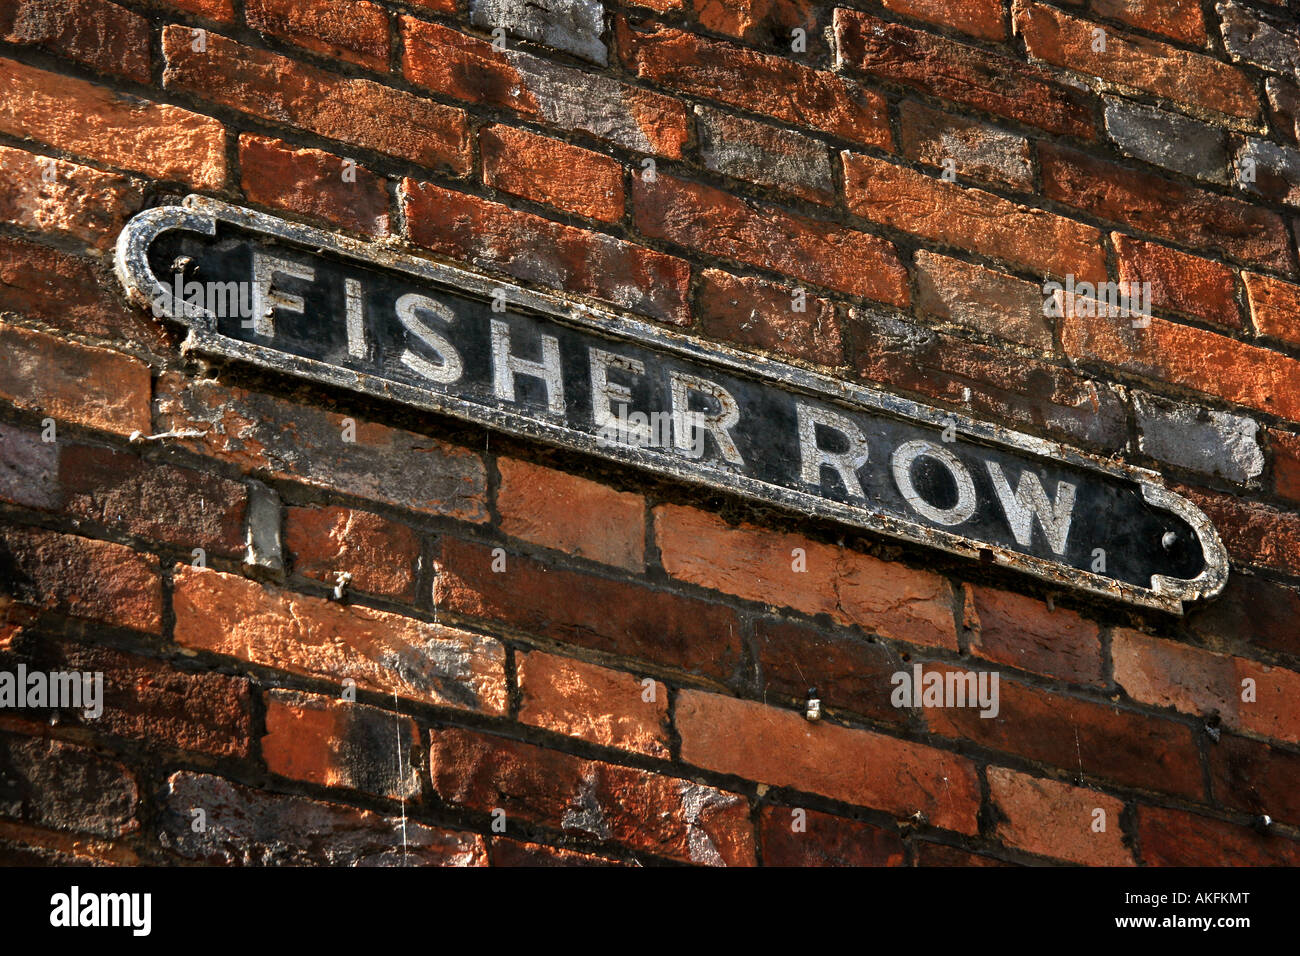 close up of old street sign Fisher Row in Oxford - Stock Image